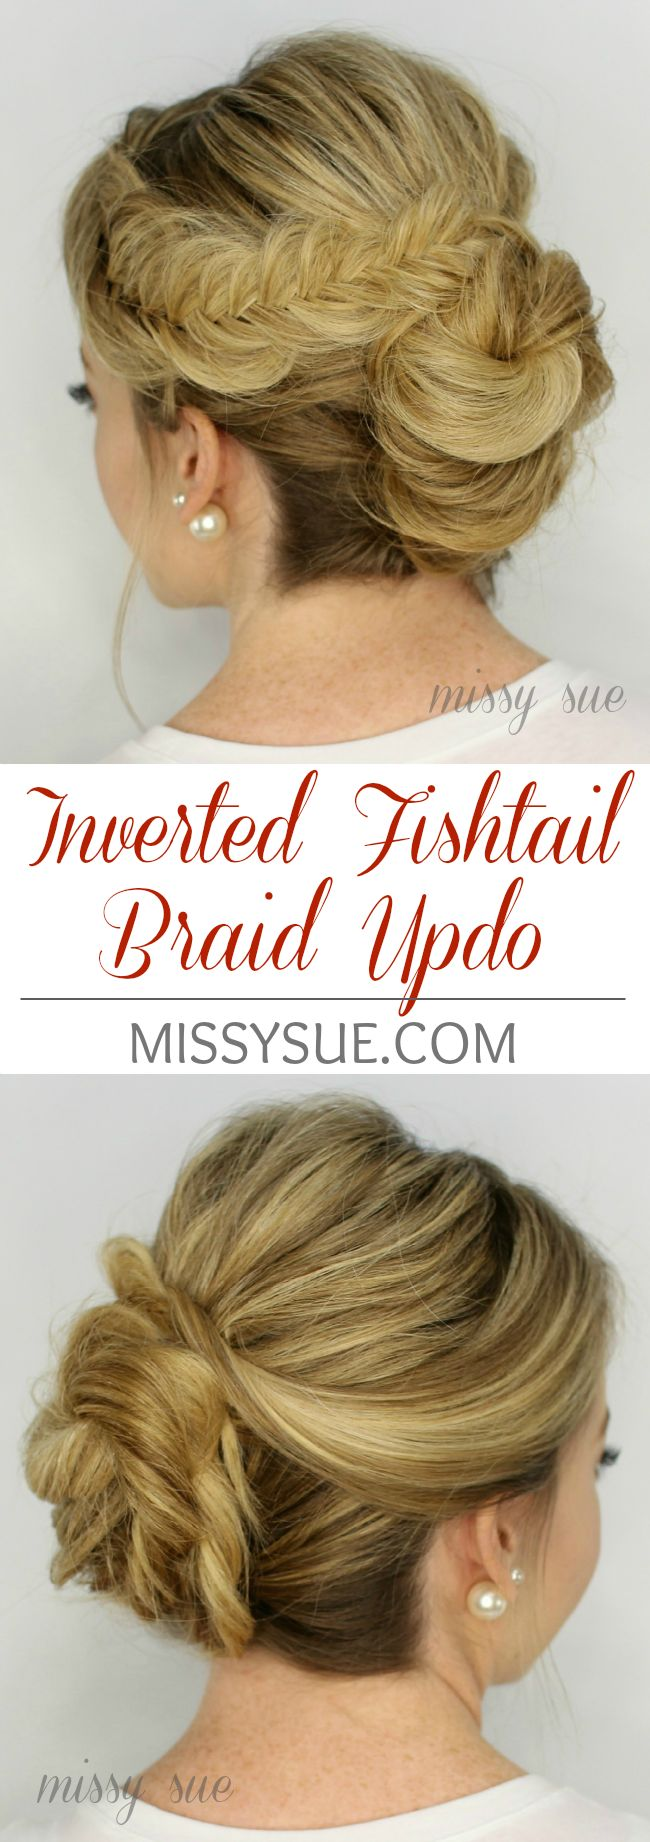 17 Best images about Styles I love on Pinterest | Easy ...